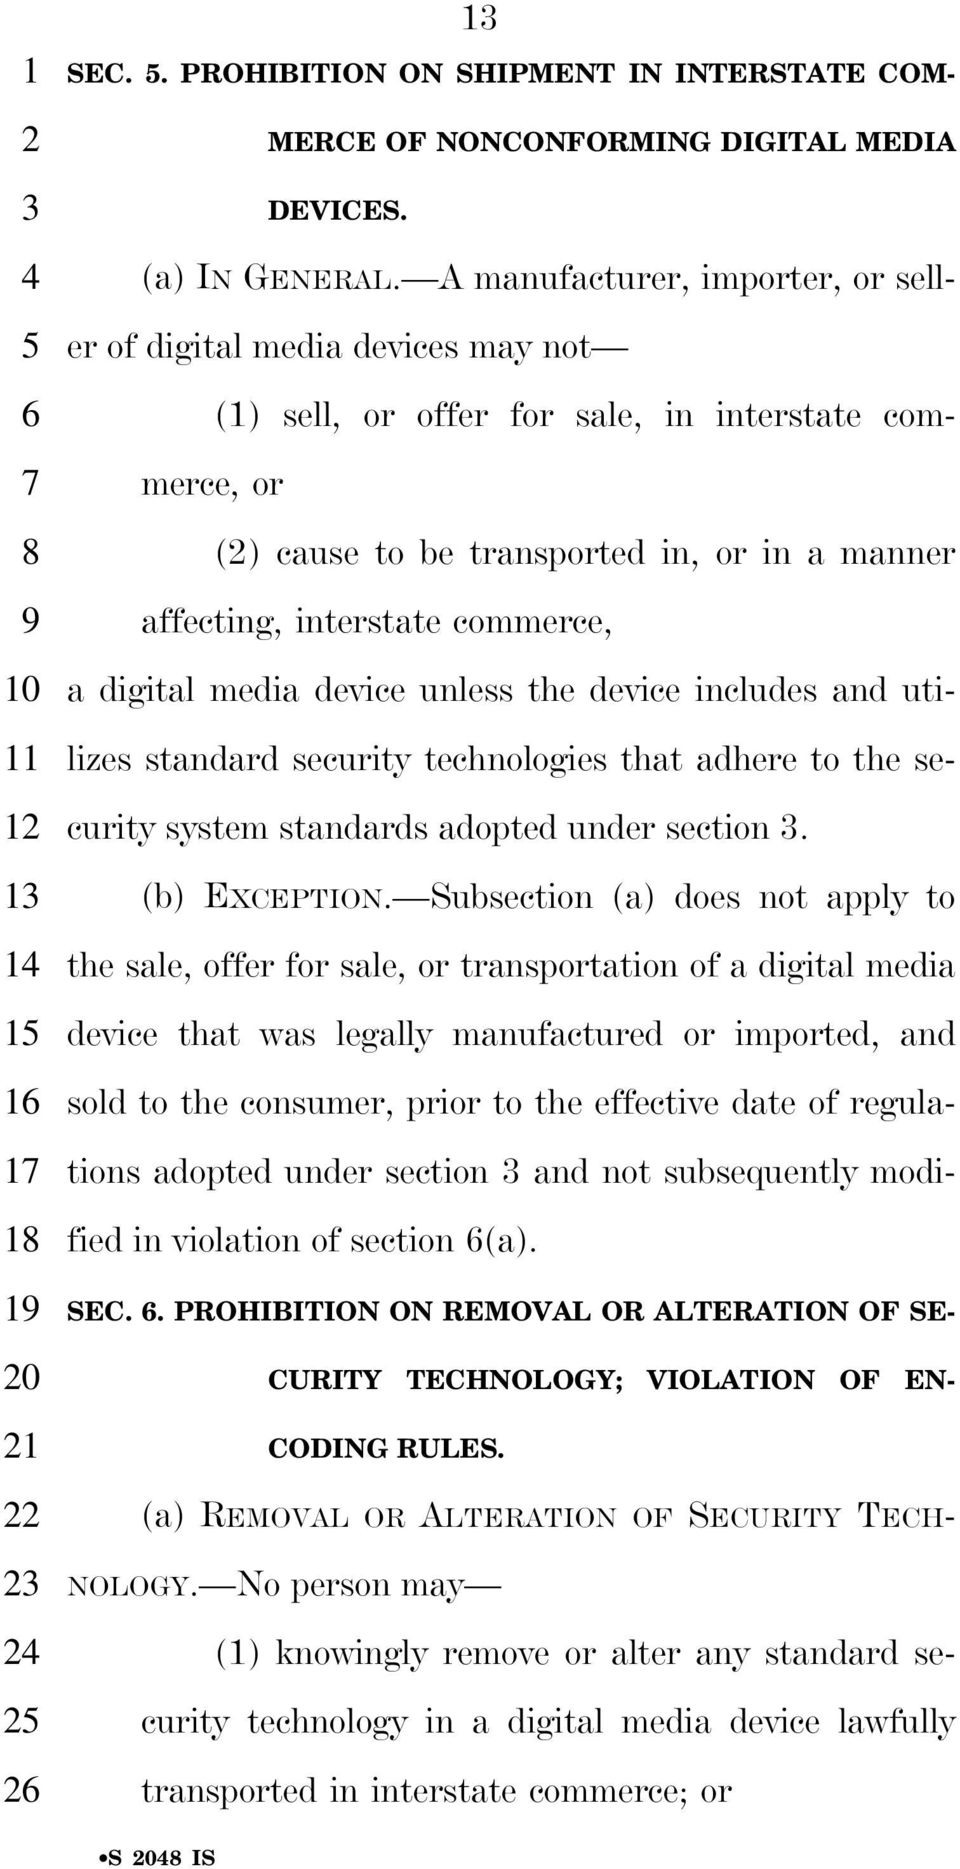 commerce, a digital media device unless the device includes and utilizes standard security technologies that adhere to the security system standards adopted under section. (b) EXCEPTION.